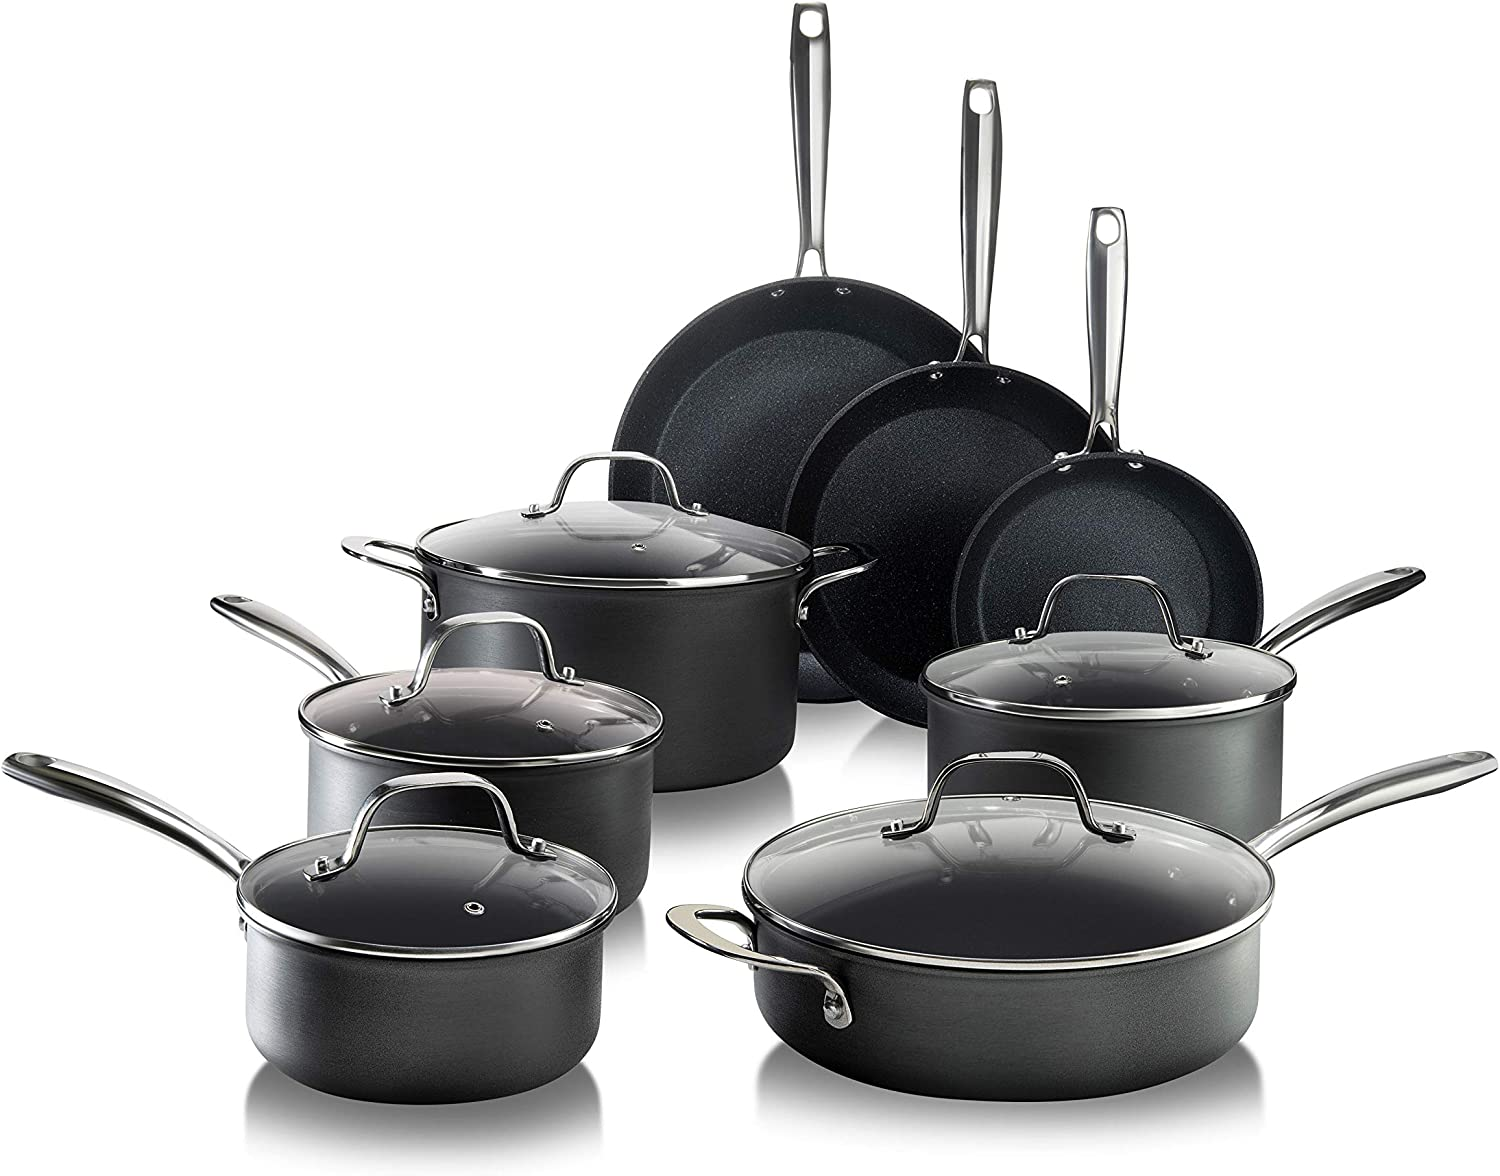 Granitestone PRO – Hard Anodized Pots and Pans 13 Piece Premium Chef's Cookware Set with Ultimate Nonstick Diamond & Mineral Coating, Oven & Dishwasher Safe, Black